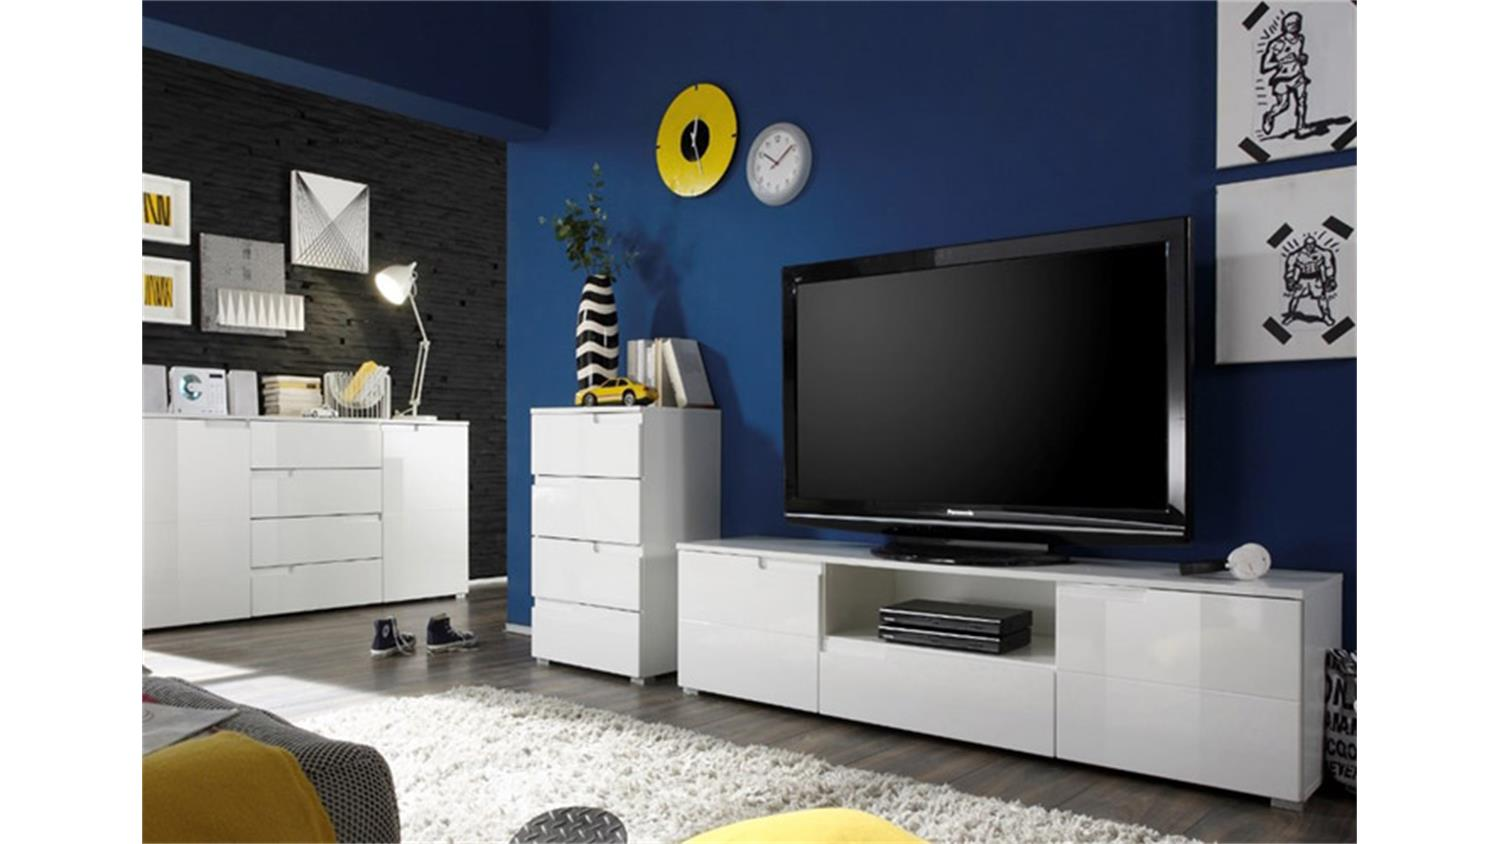 kommode spice wei es sideboard mti 2 hochglanz t ren 100 cm. Black Bedroom Furniture Sets. Home Design Ideas